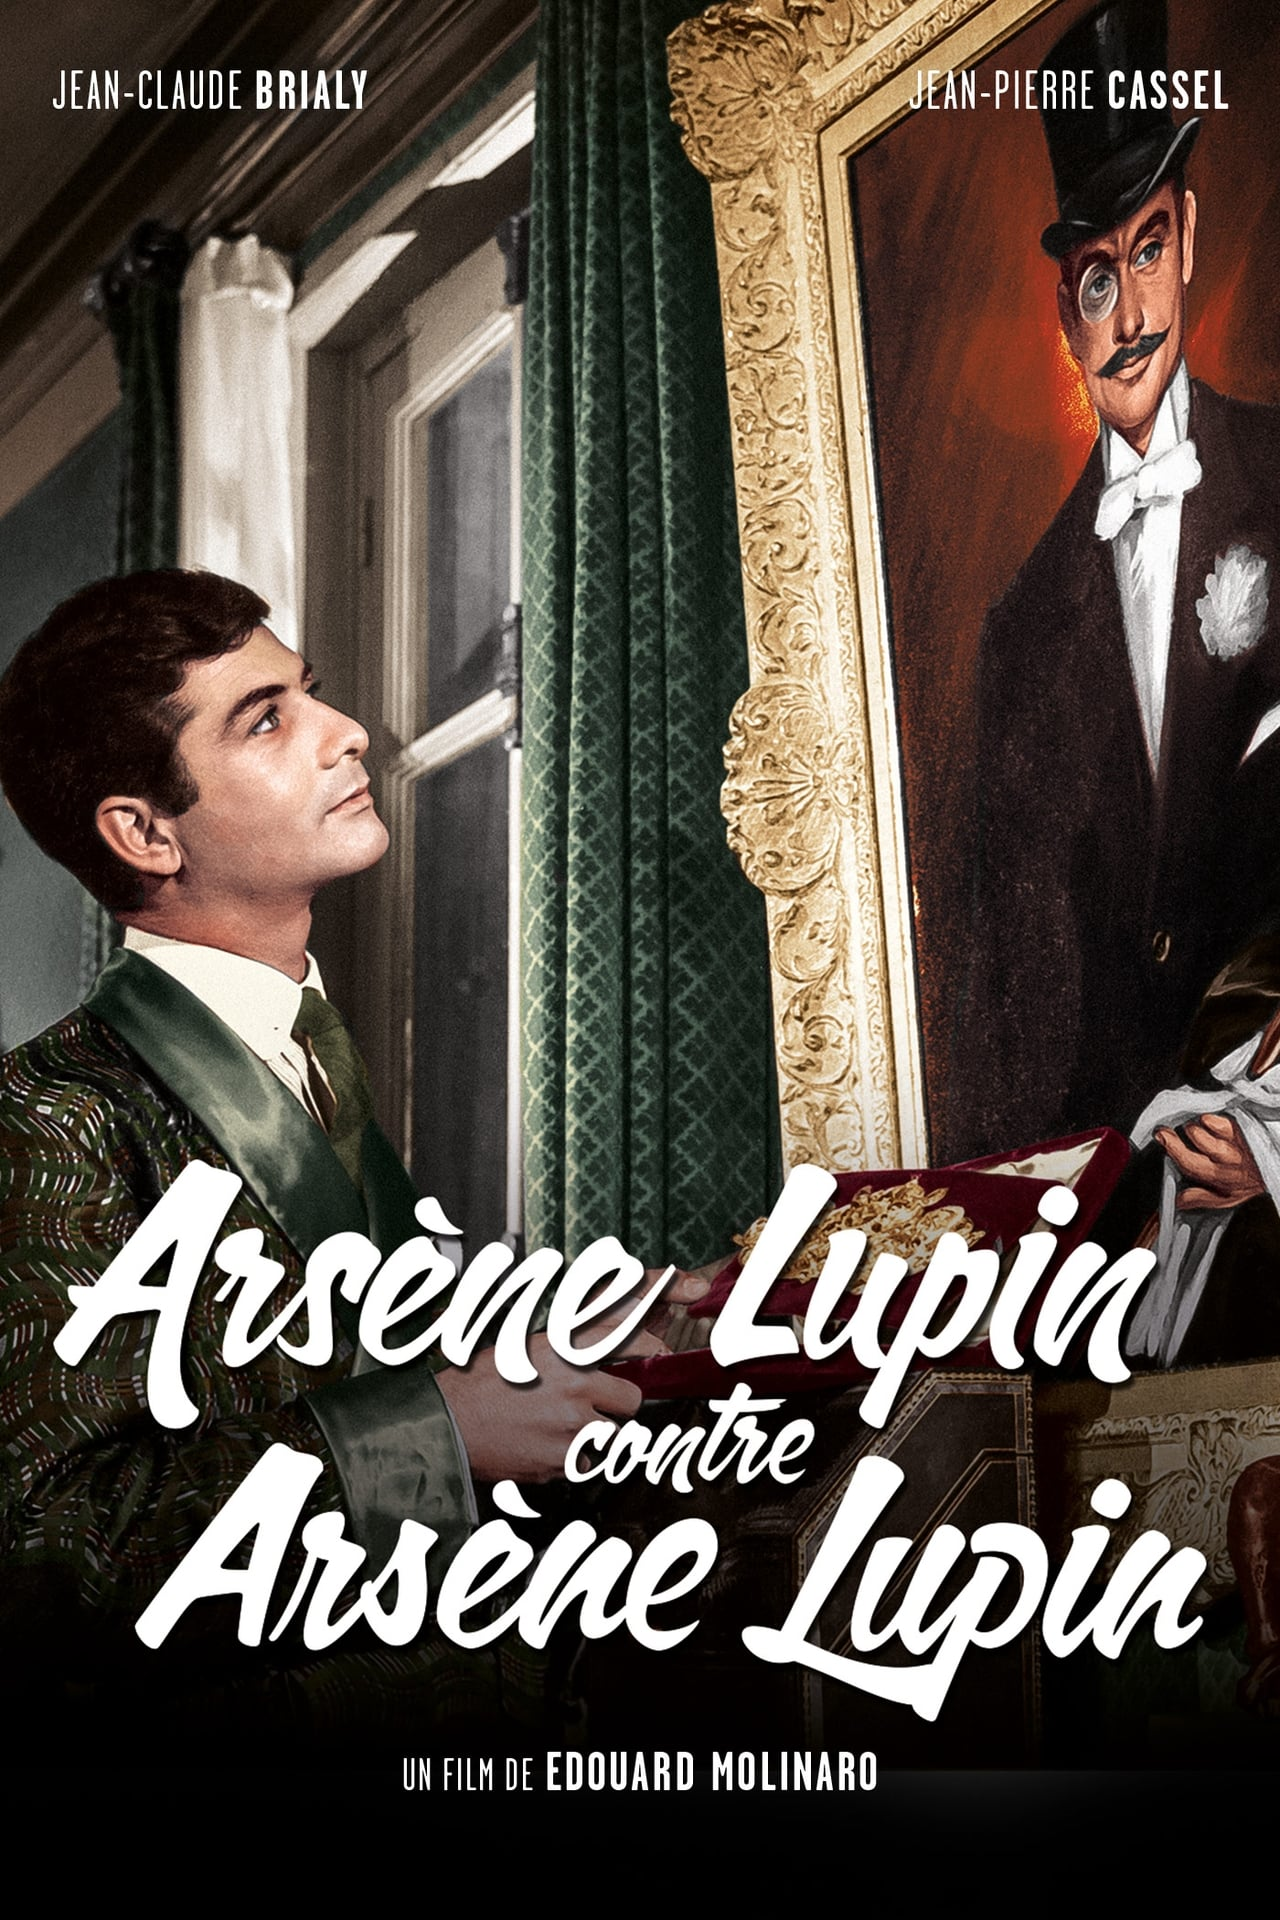 Arsène Lupin contre Arsène Lupin